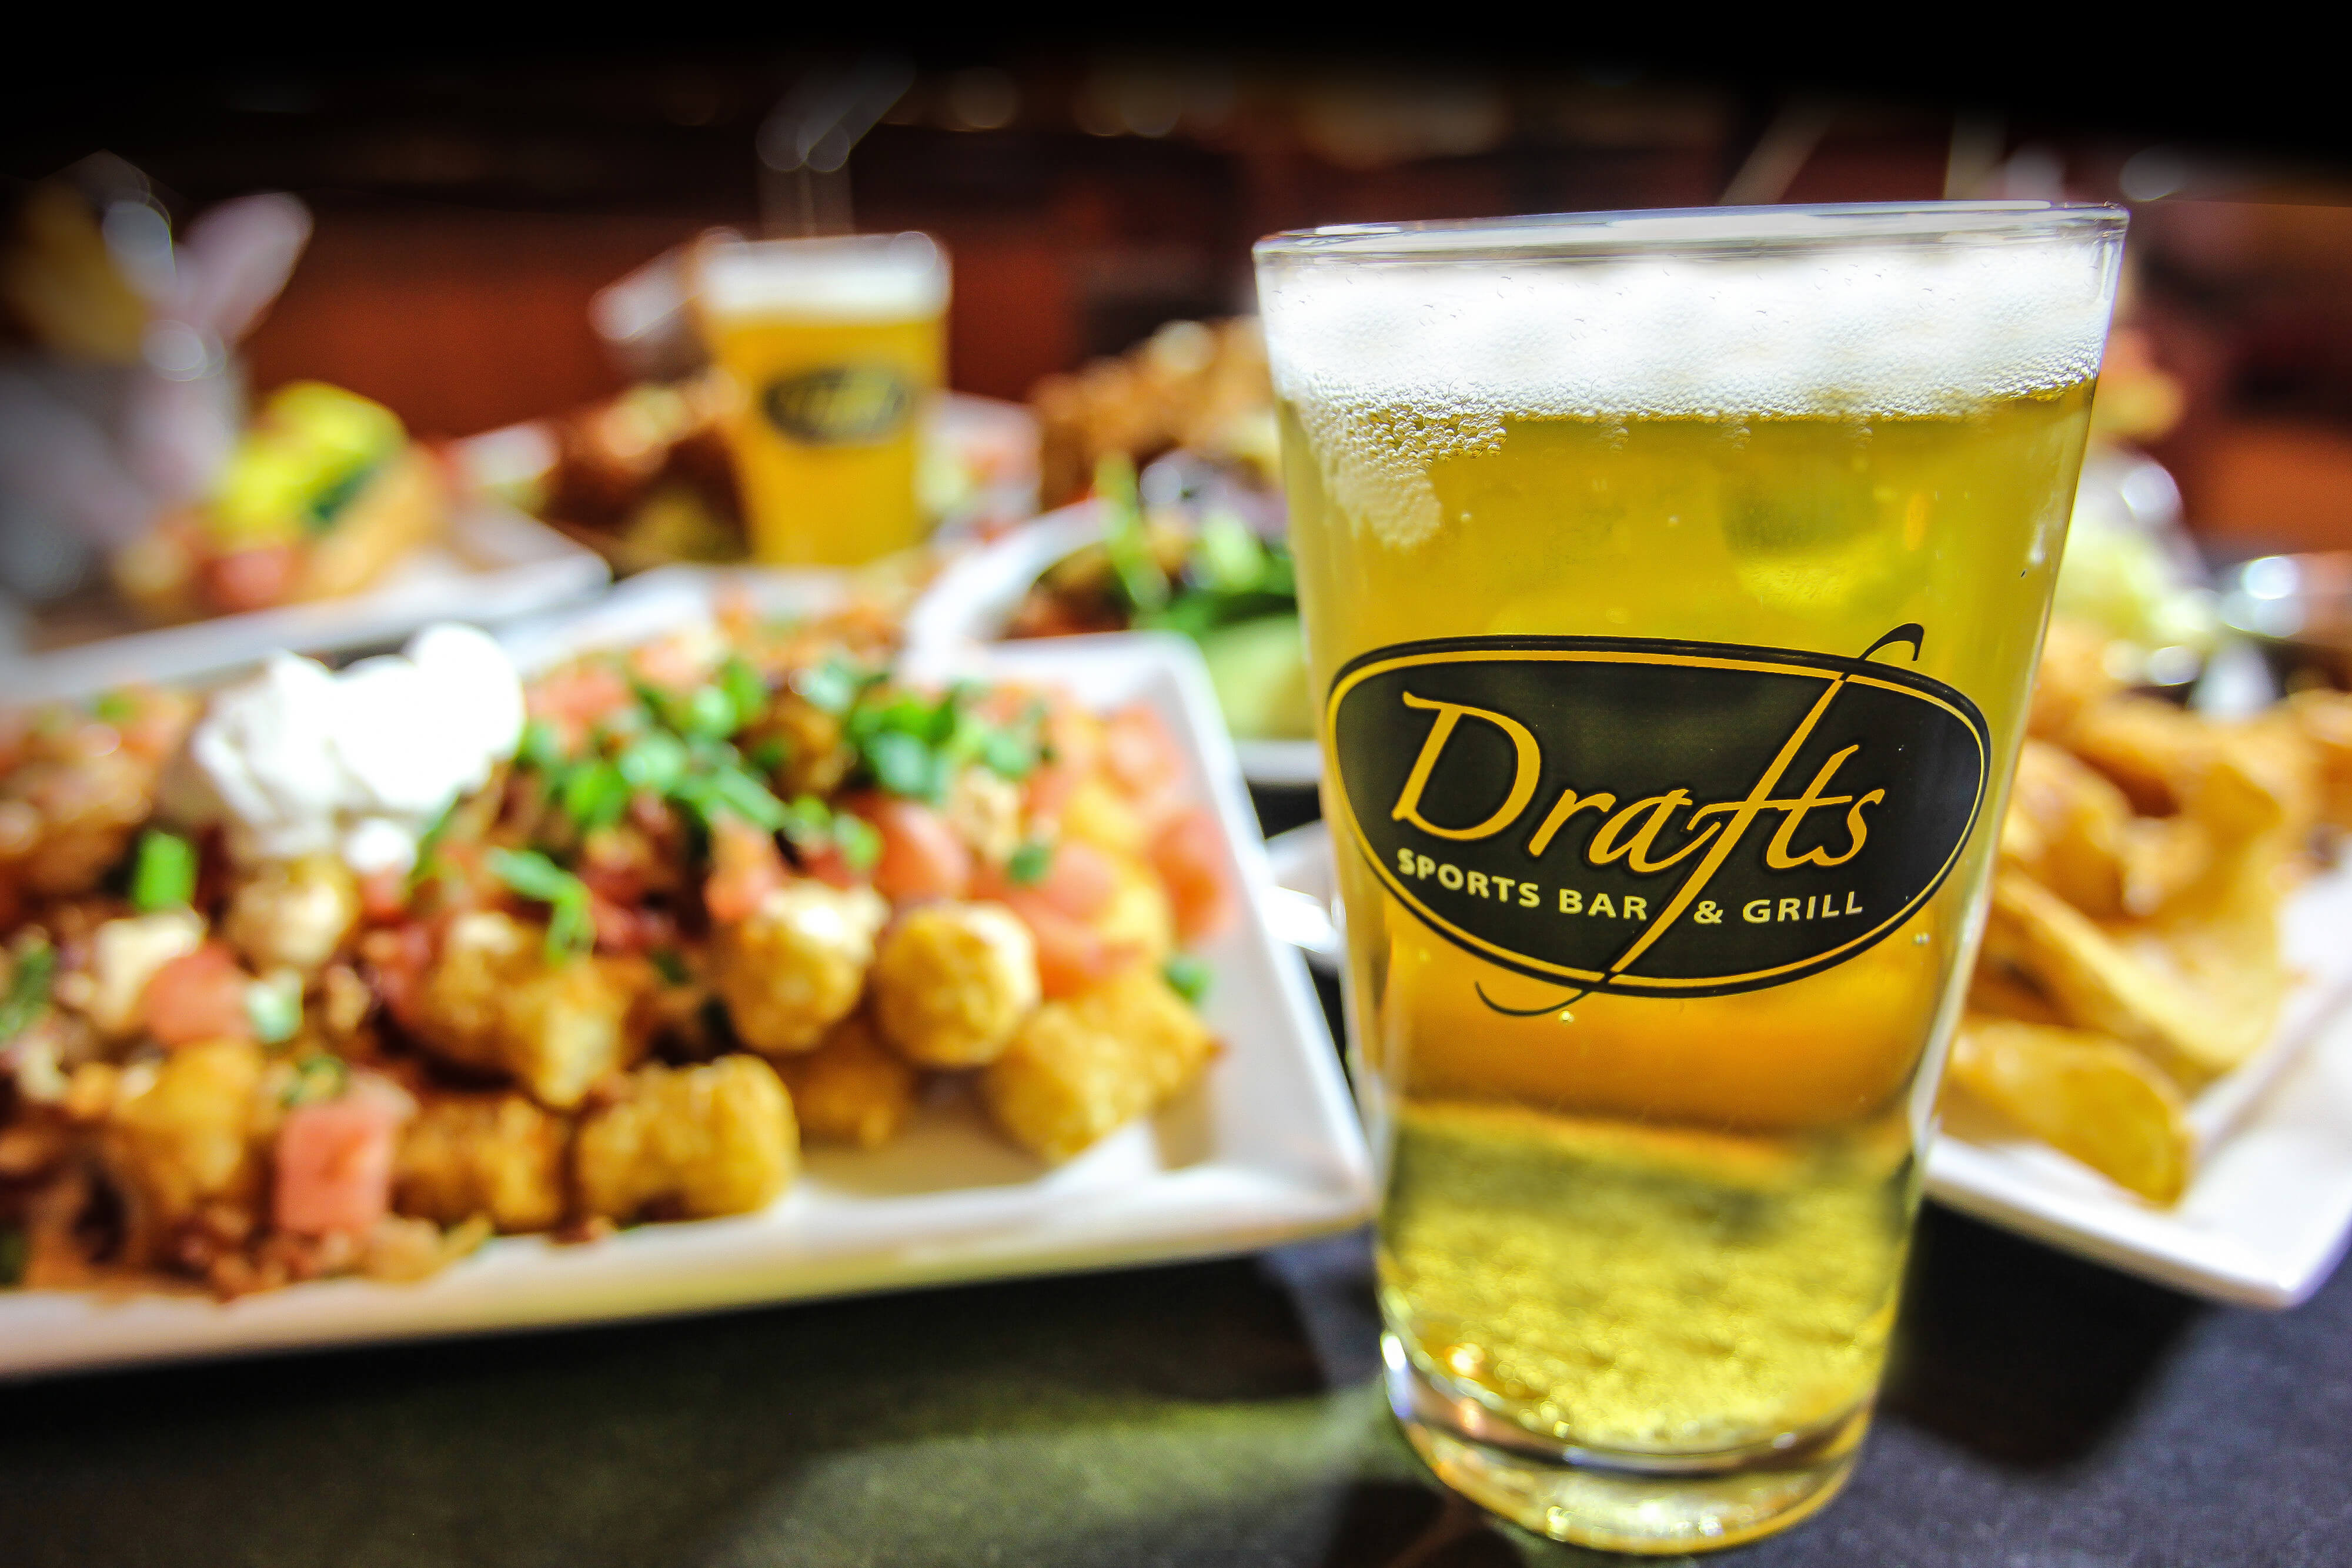 Drafts Express On International Drive | 15 Restaurants on International Drive Orlando You Have to Try